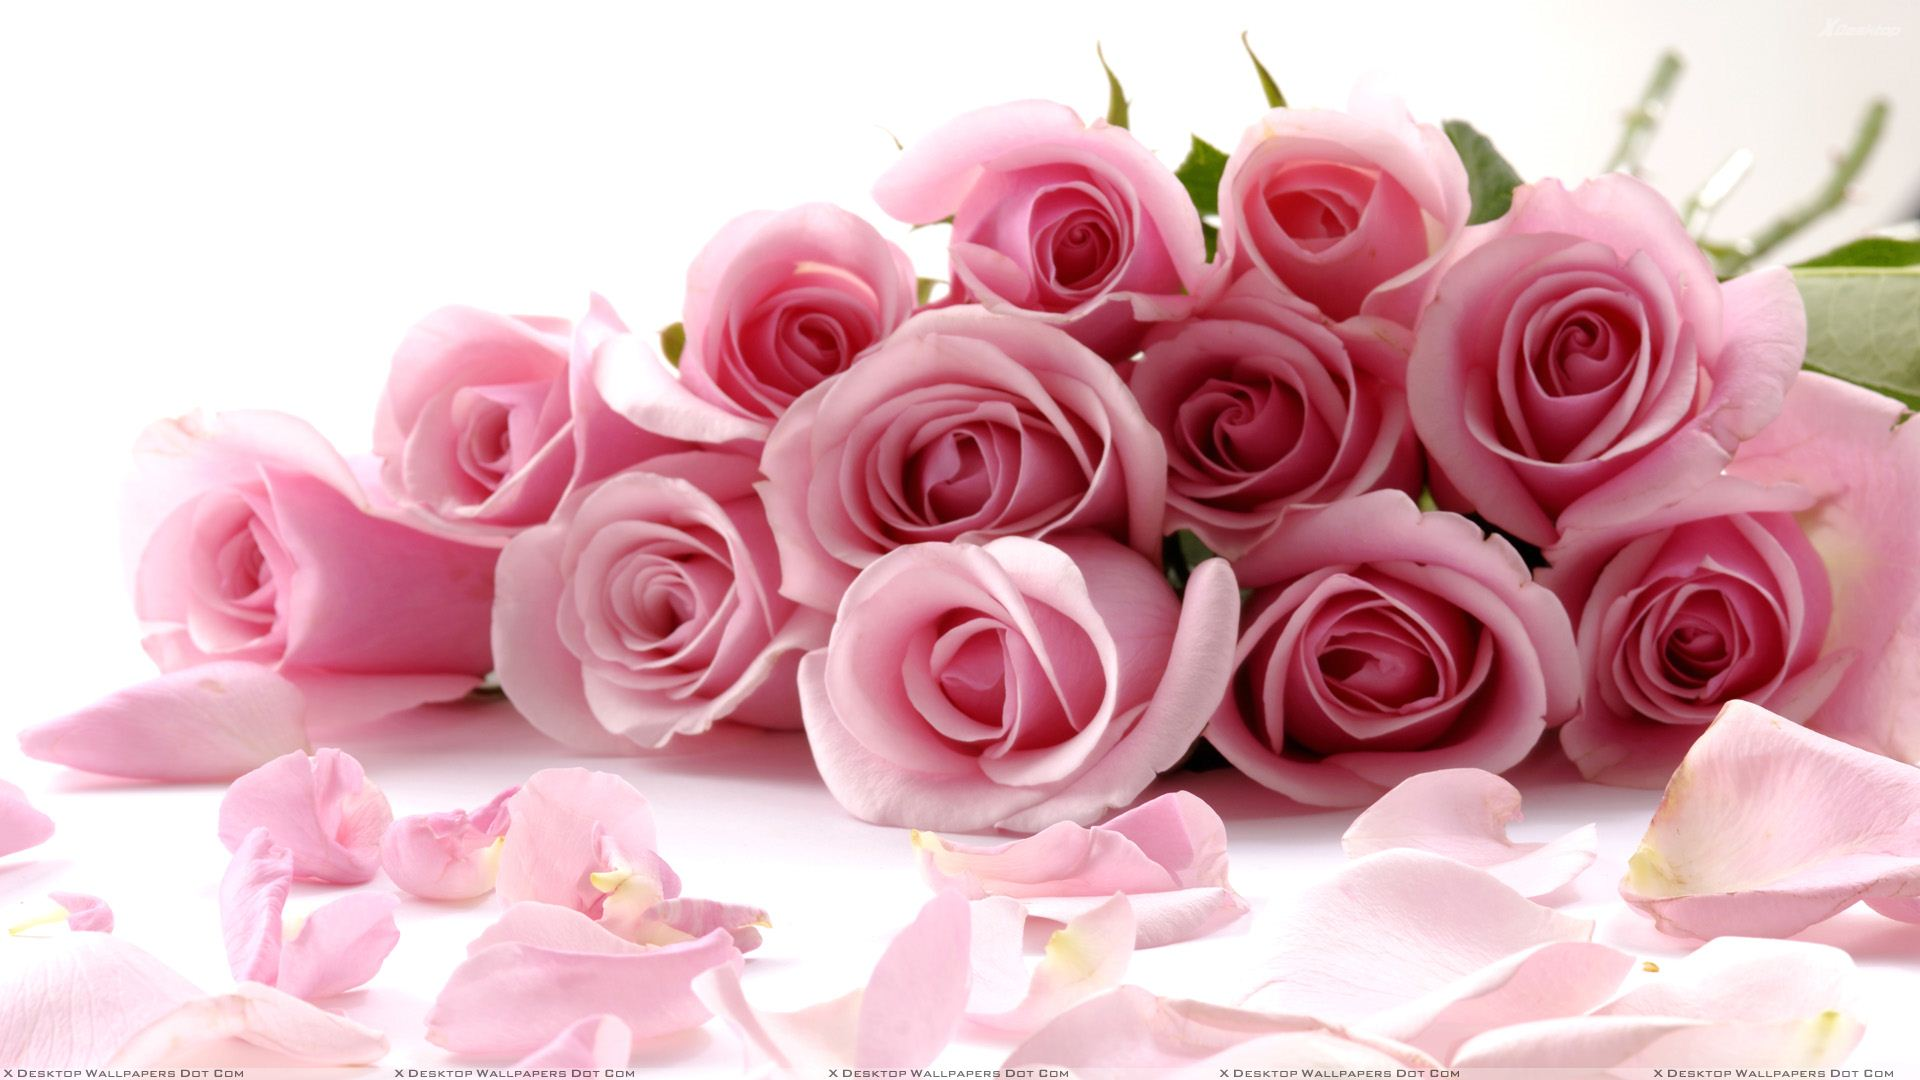 Pink Roses On White Background Closeup Wallpaper 1920x1080